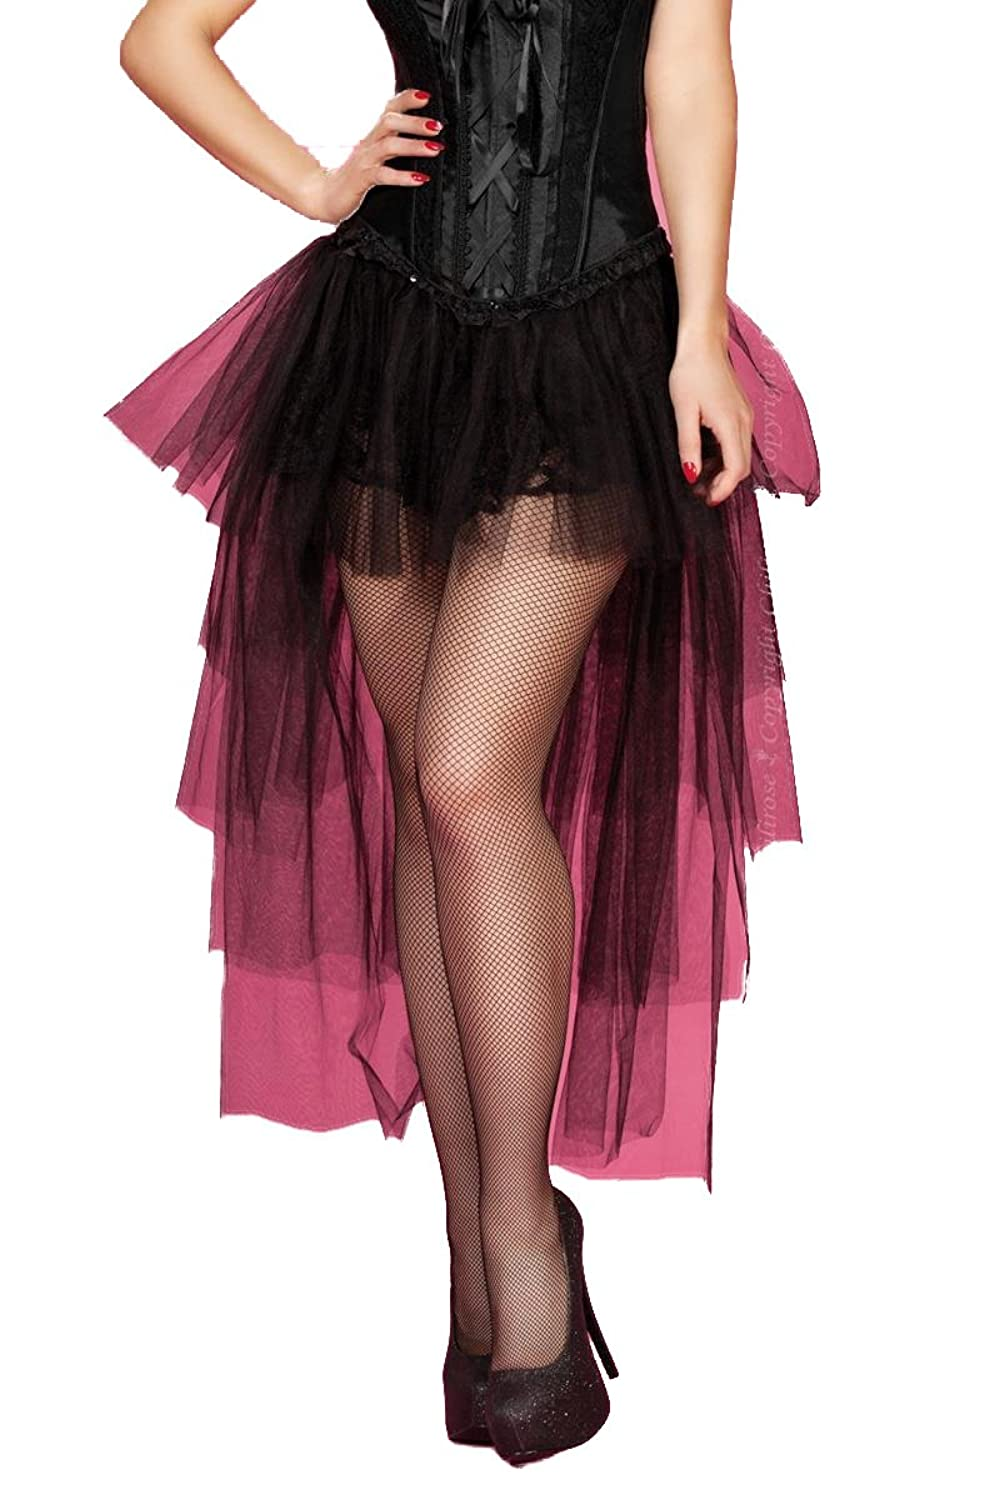 Black Mini skirt with tulle and Train with Floral Lace Women's Skirt